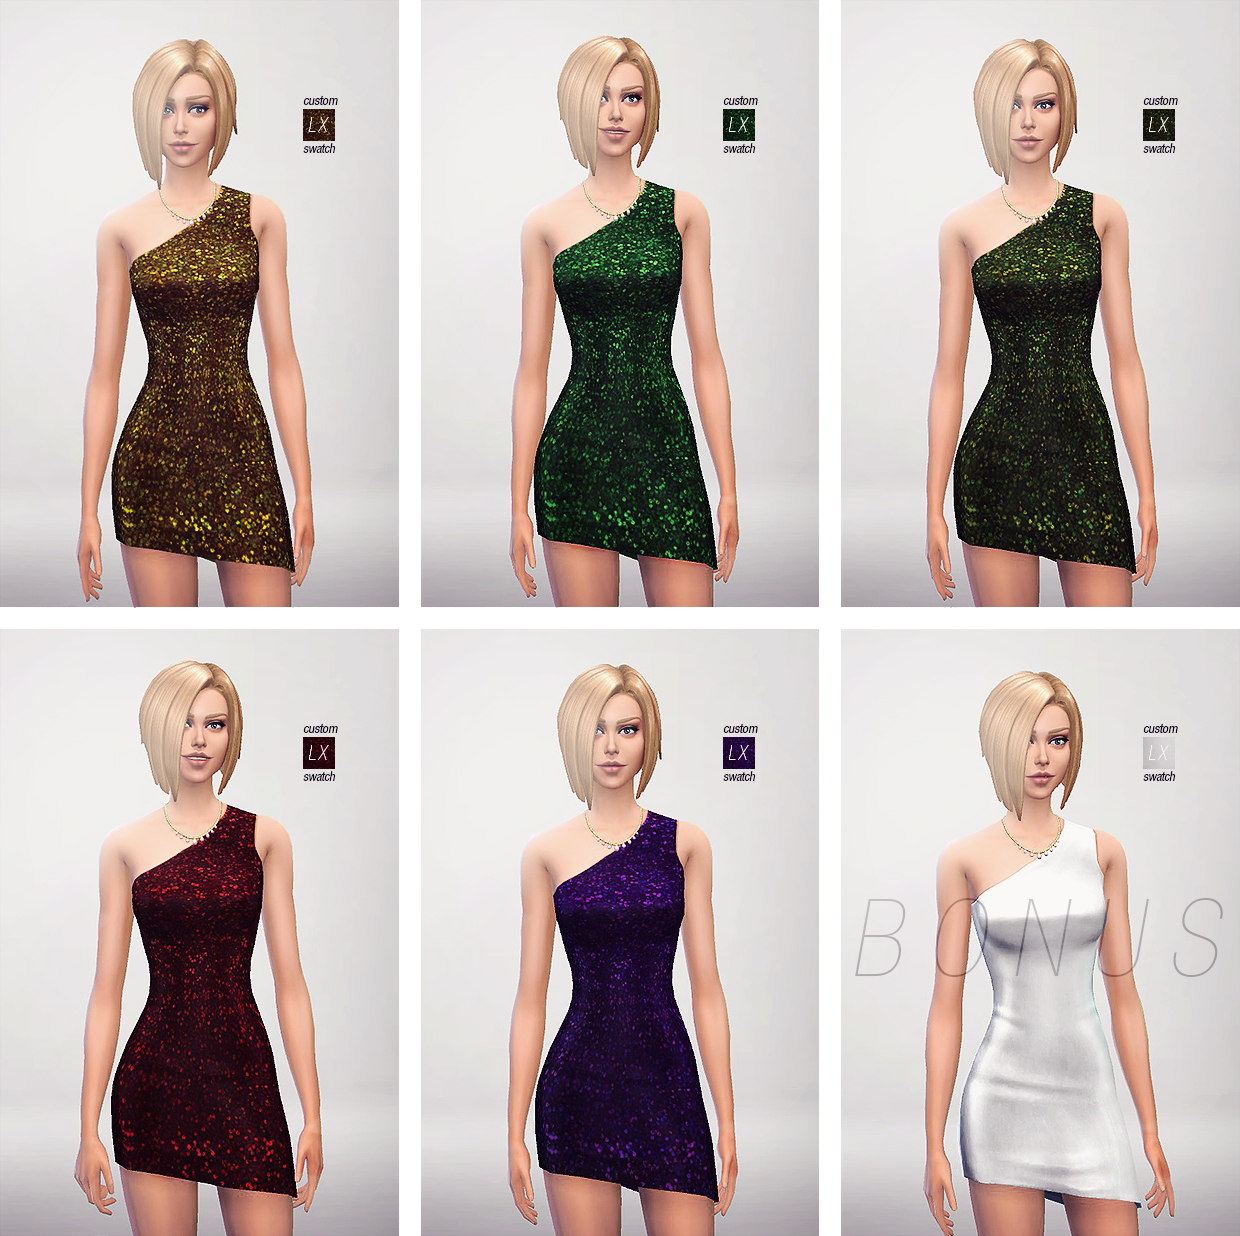 7 Sequin Dresses by Lightsxxx